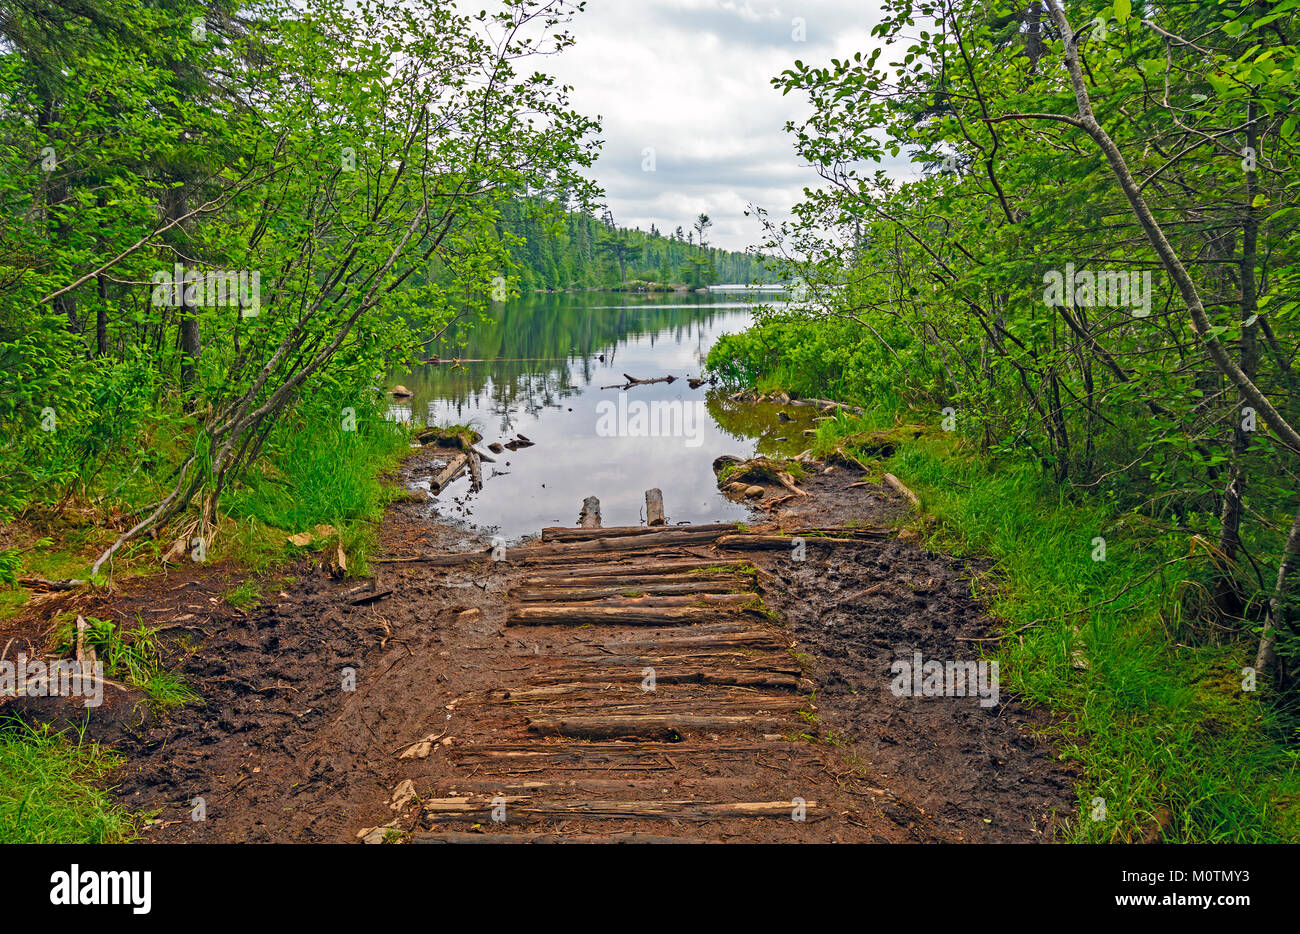 Portage Trail to Lizz Lake in the Boundary Waters in Minnesota - Stock Image